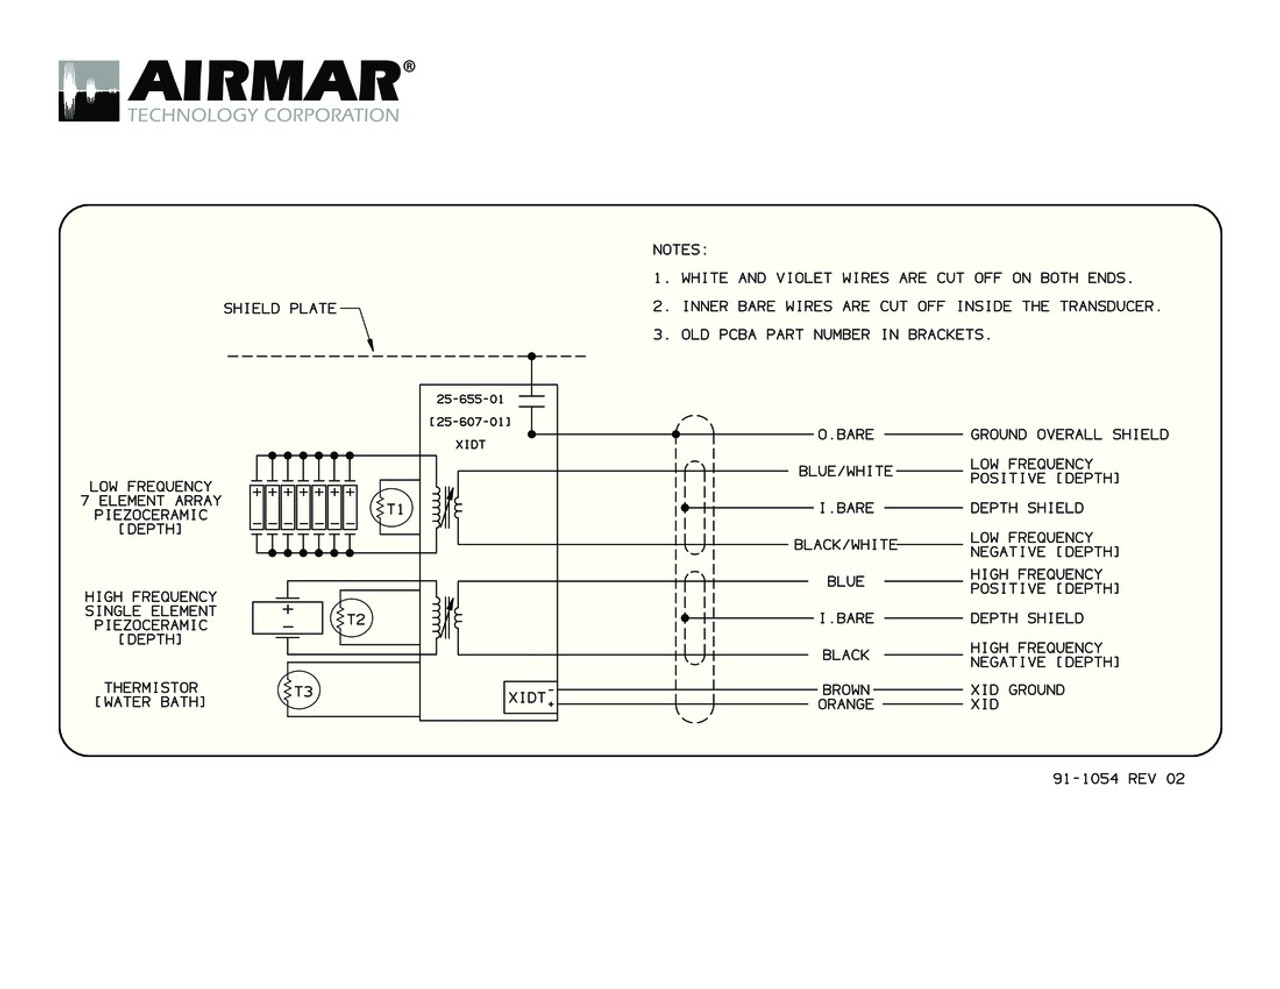 humminbird transducer wiring diagram wiring library m265c lh with bare wire cable airmar wiring diagram [ 1100 x 850 Pixel ]